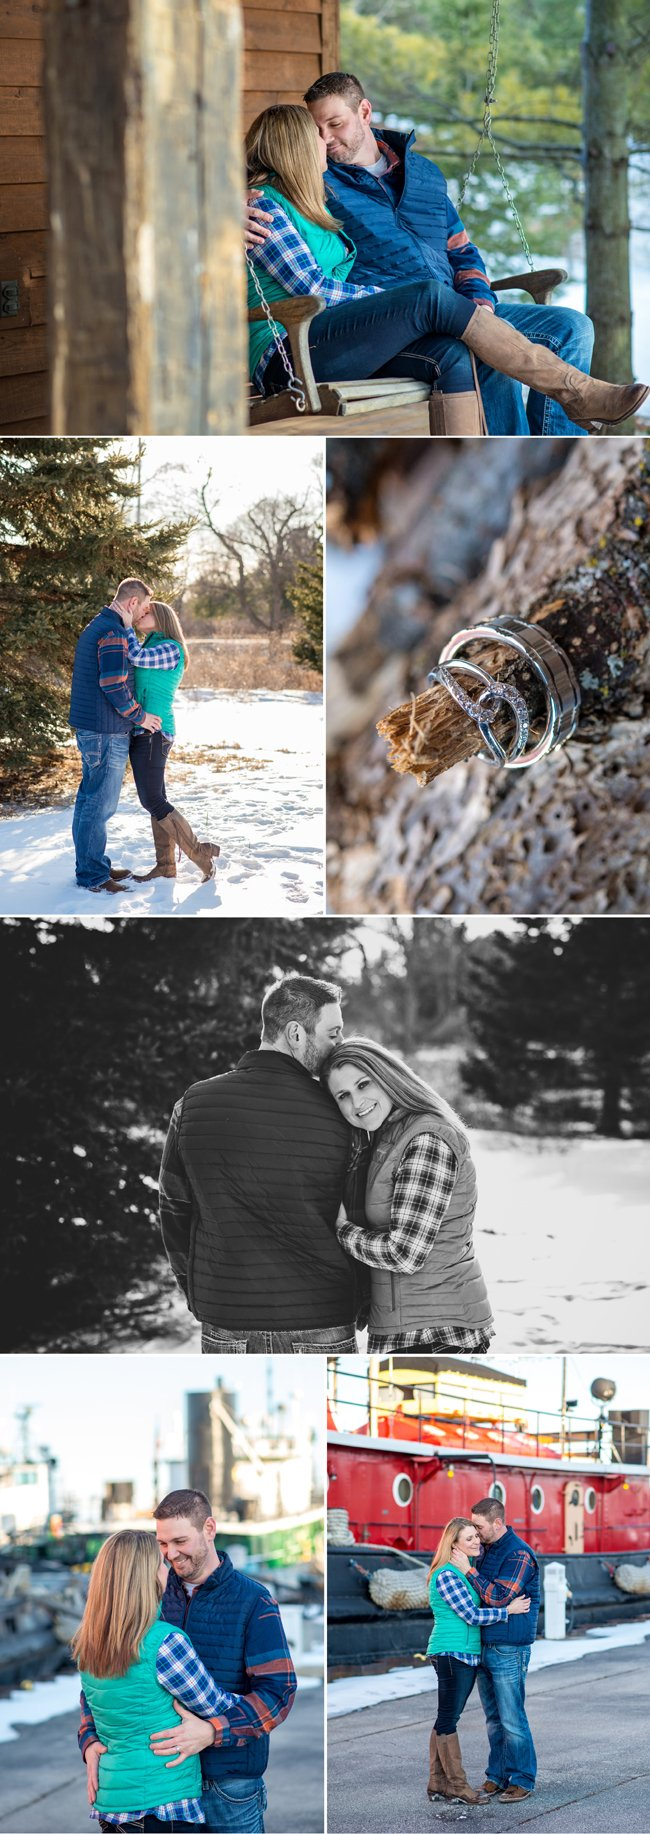 Door-County-Elopement-Wedding-Intimate-Cabin-Country-Woods-Winter-Wisconsin-Photography-2